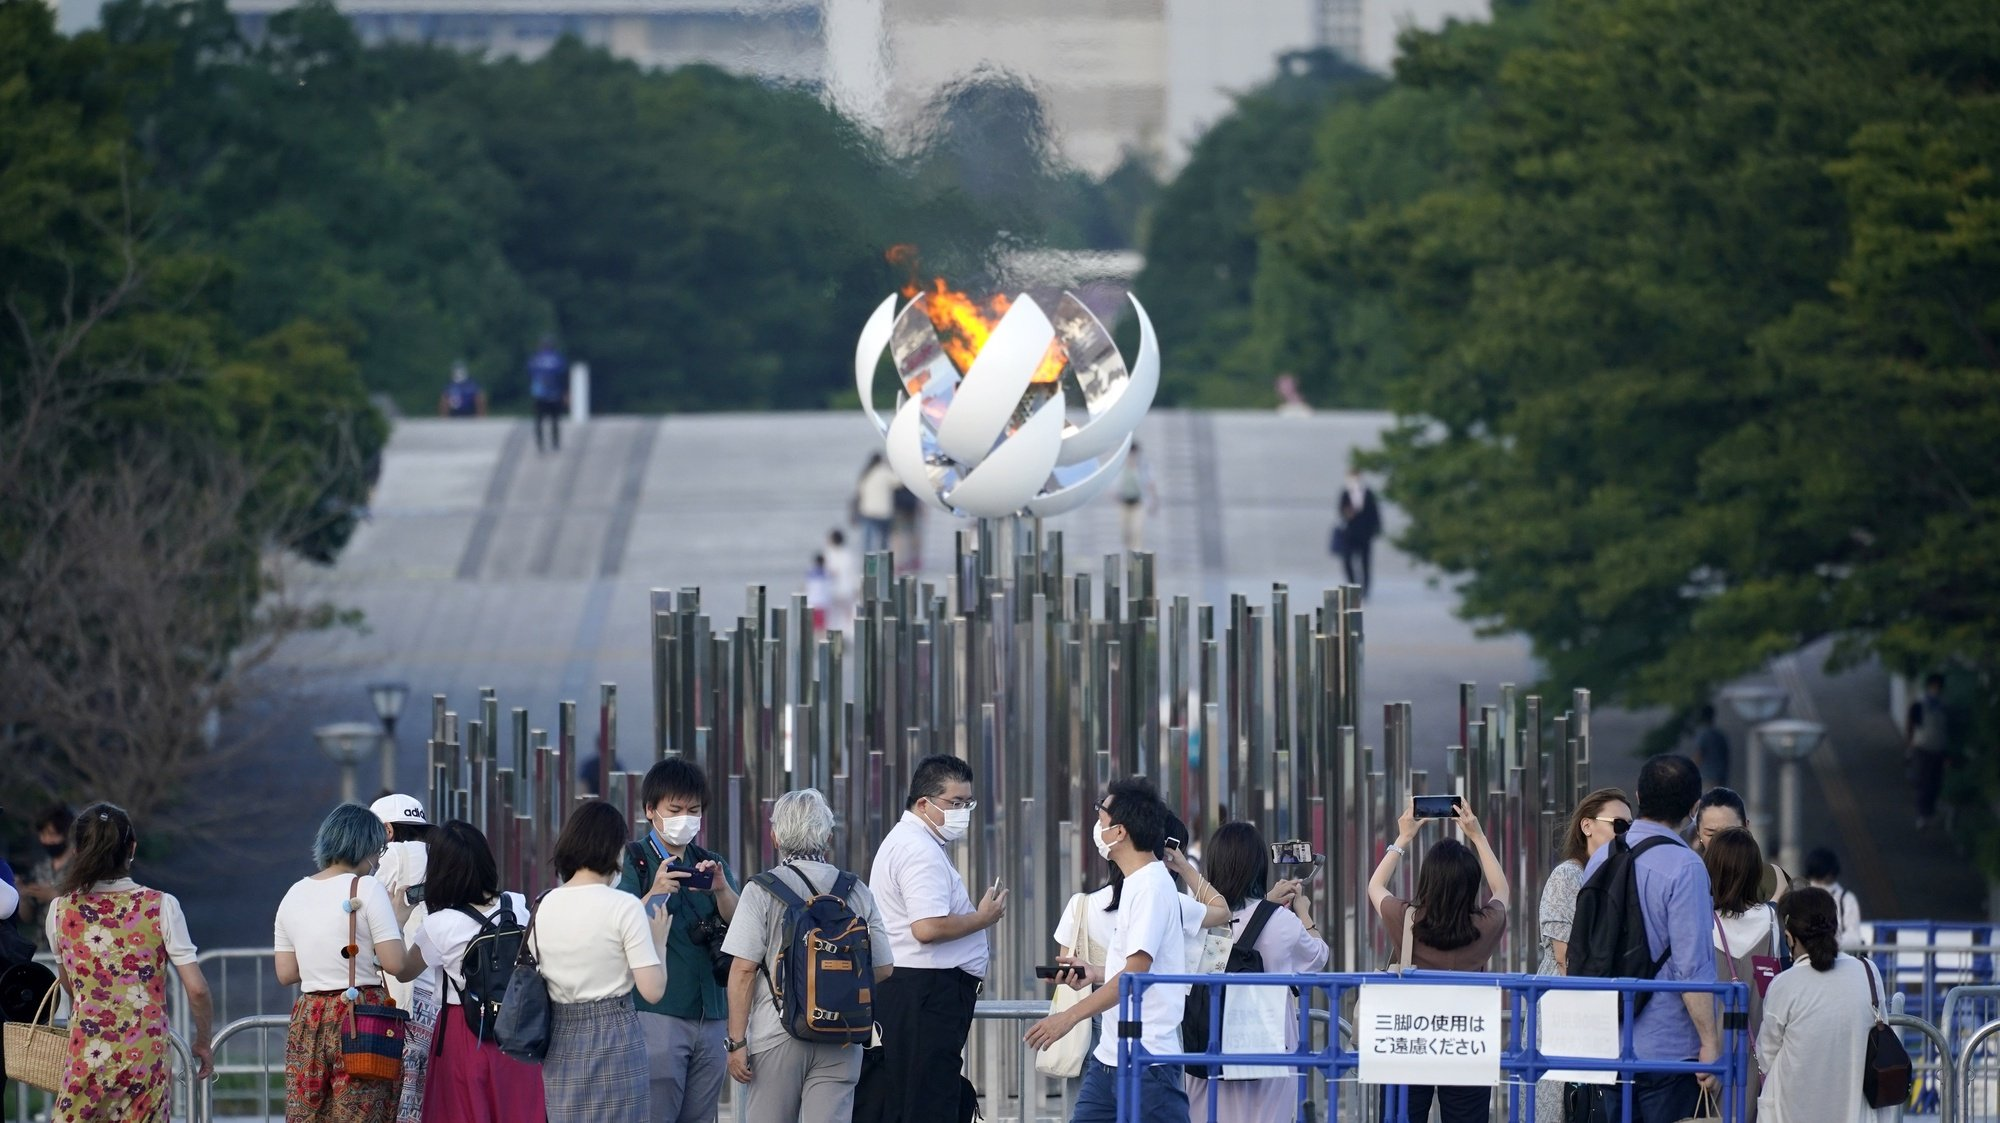 epa09373419 People take photos of the Olympic Flame in Tokyo, Japan, 28 July 2021. The Japanese capital recorded 3,177 new coronavirus cases on 28 July, hitting a new daily record for the second day in a row. It reported 2,848 cases on 27 July, adding further pressure on the country's health care system.  EPA/FRANCK ROBICHON